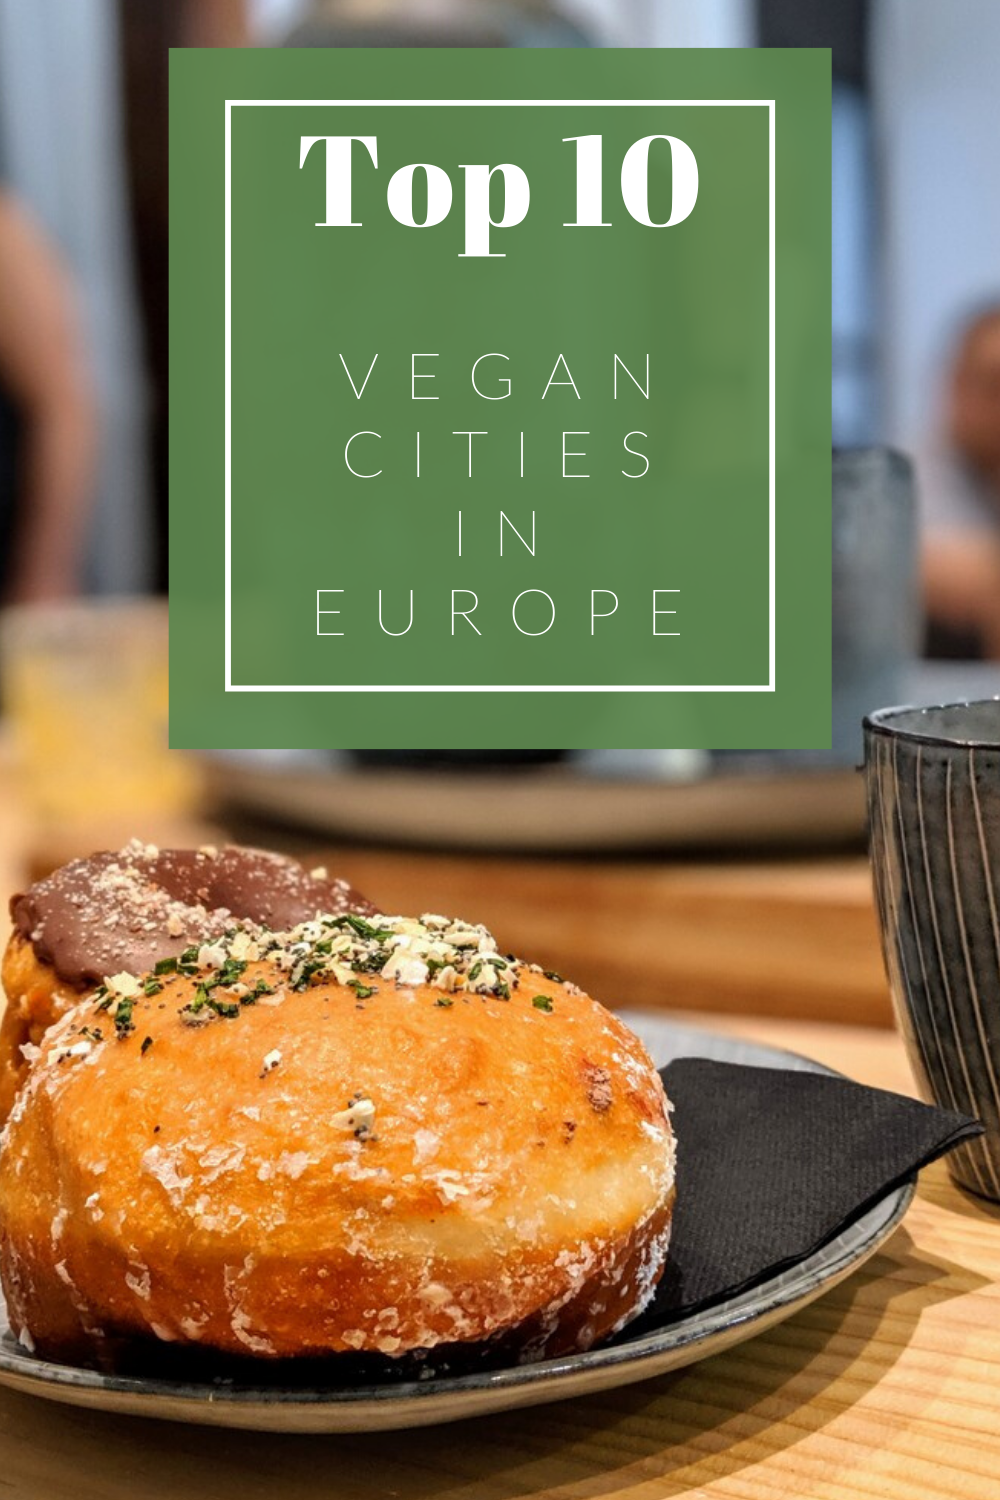 Top Vegan Cities in Europe for the best vegan travel in Europe ever! Want to know what the vegan capital of Europe is? Click to find out! #VeganTravel #VeganEurope